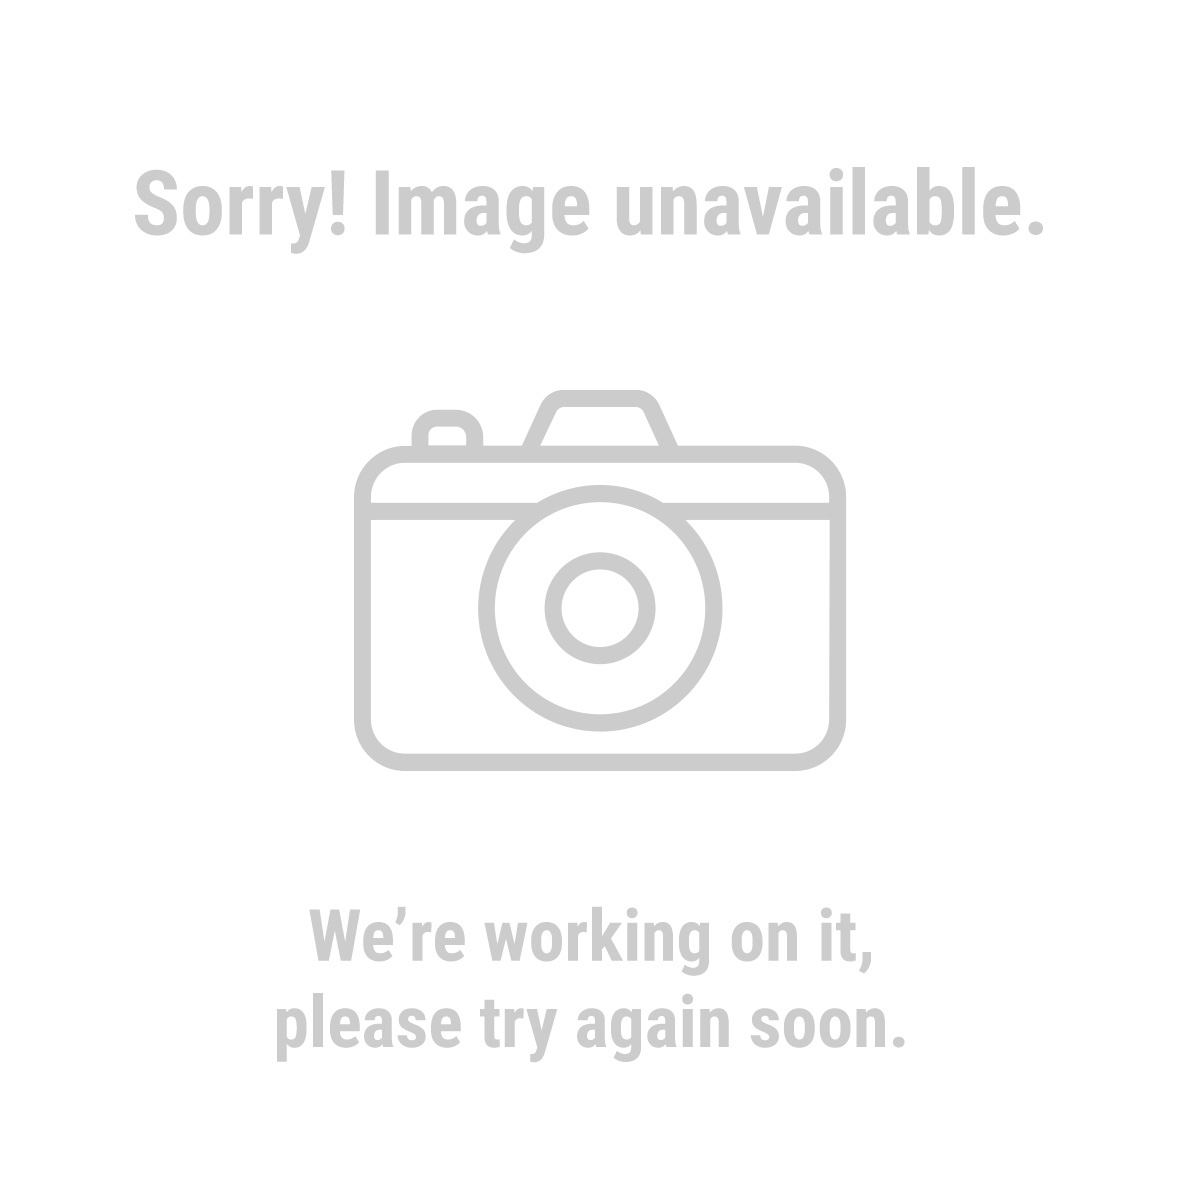 Central Machinery 38144 Heavy Duty 16 Speed Floor Drill Press